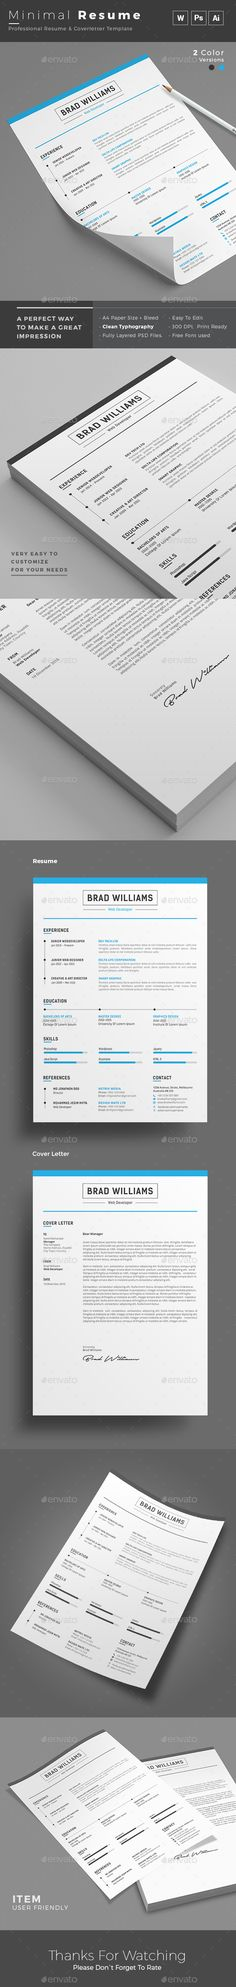 MS WORD CV Template Resume Template + Cover Letter PSD + AI - cv template download